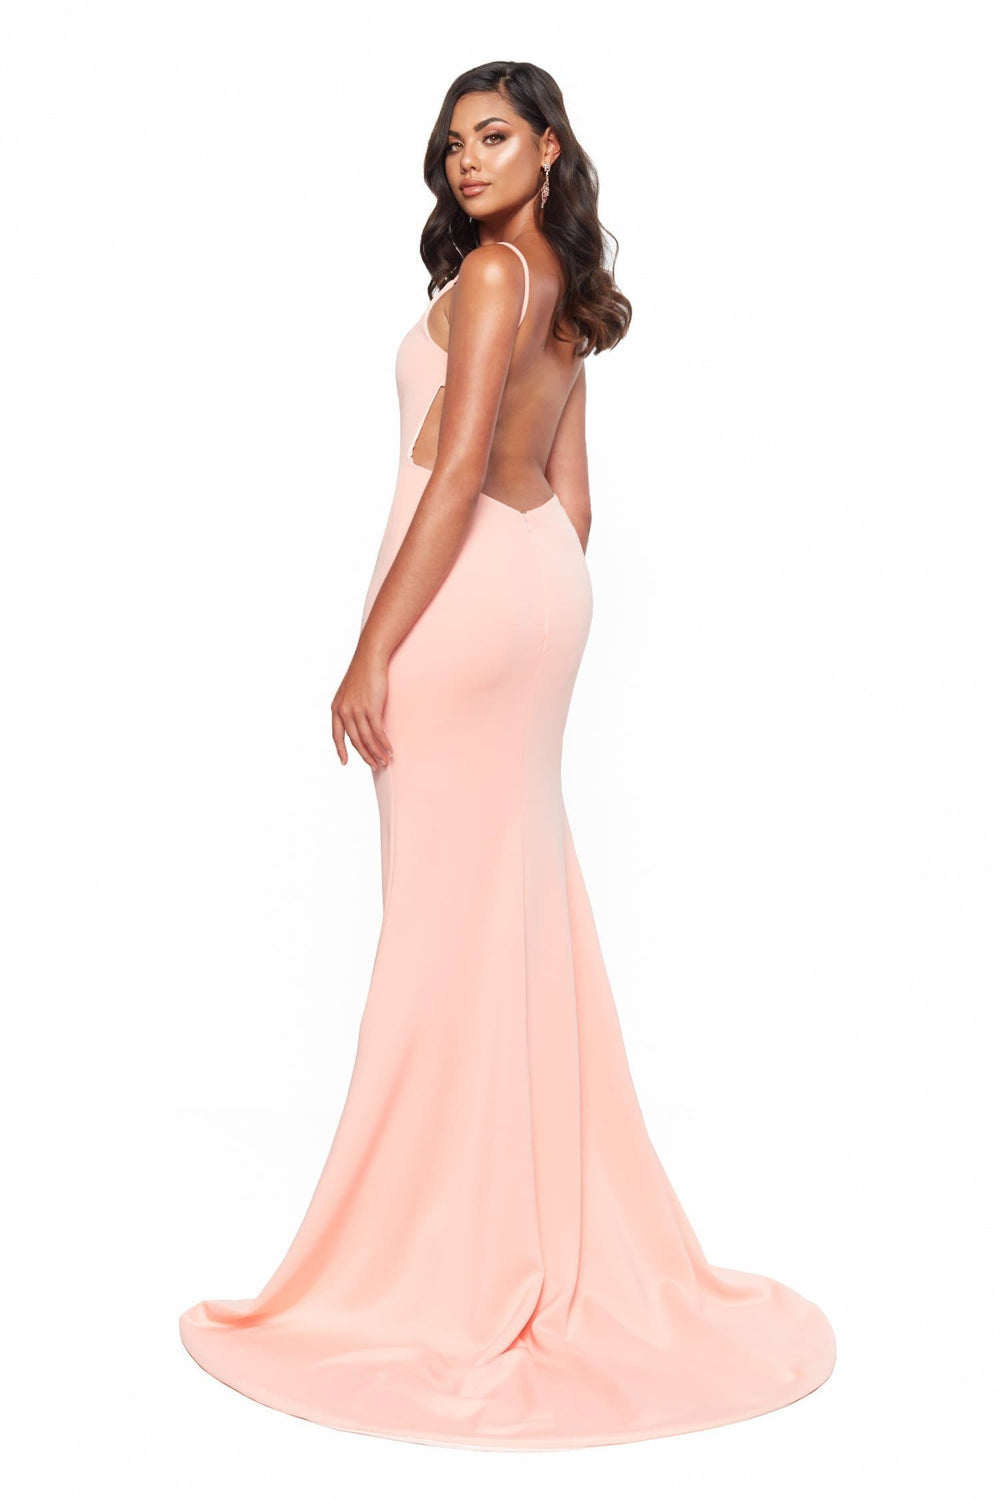 A&N Bridesmaids April Low Back Ponti Gown With Slit - Peach